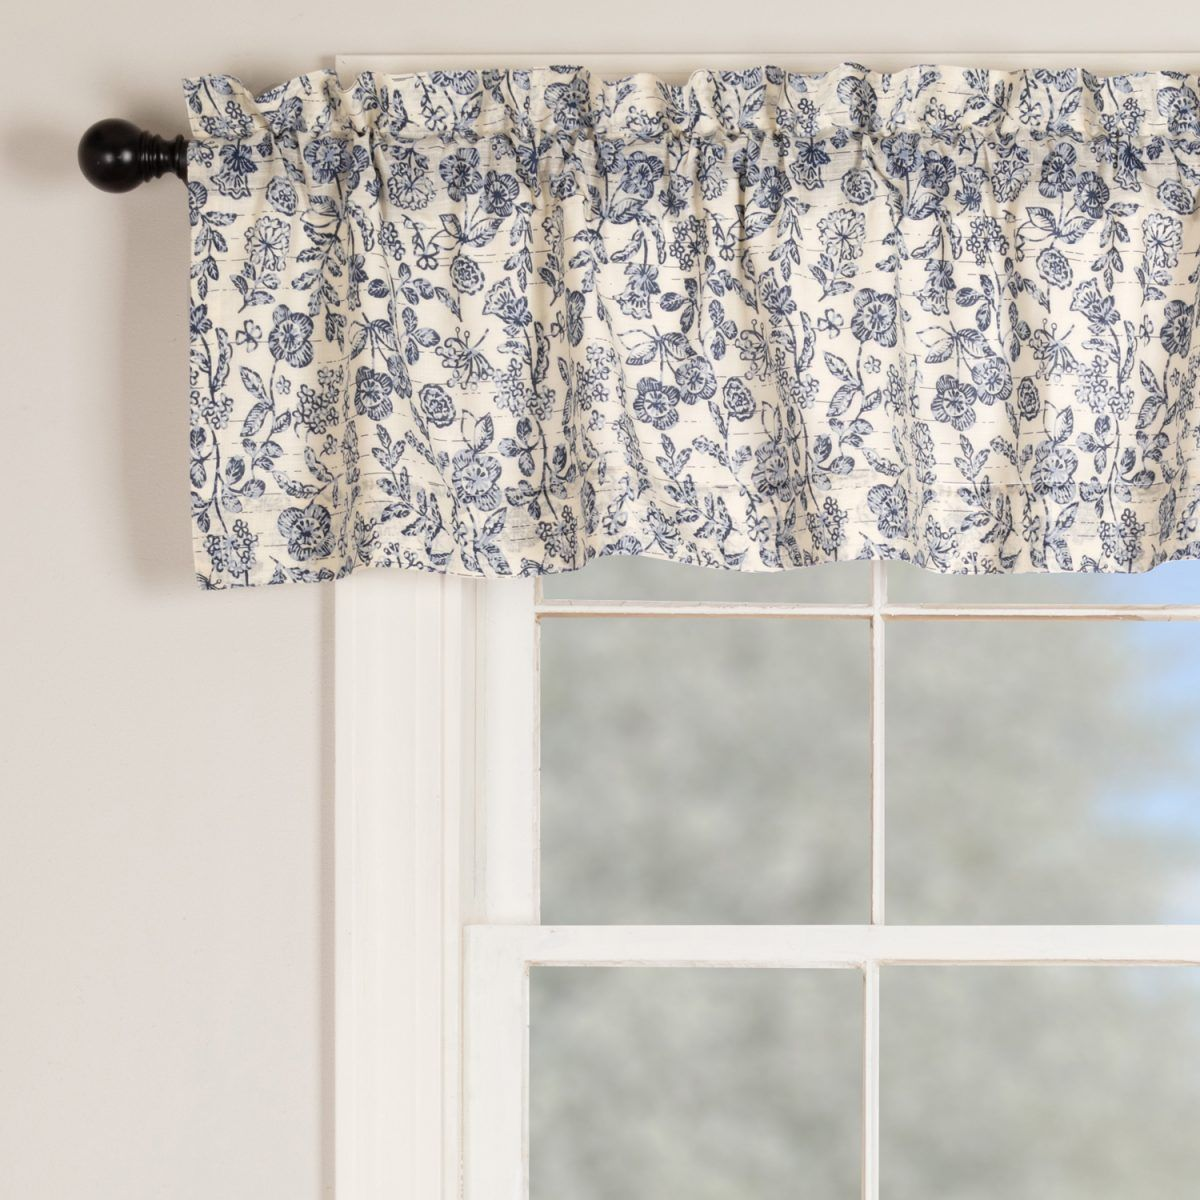 Doylestown Floral Valance Valance Farmhouse Fabric Floral Shower Curtains